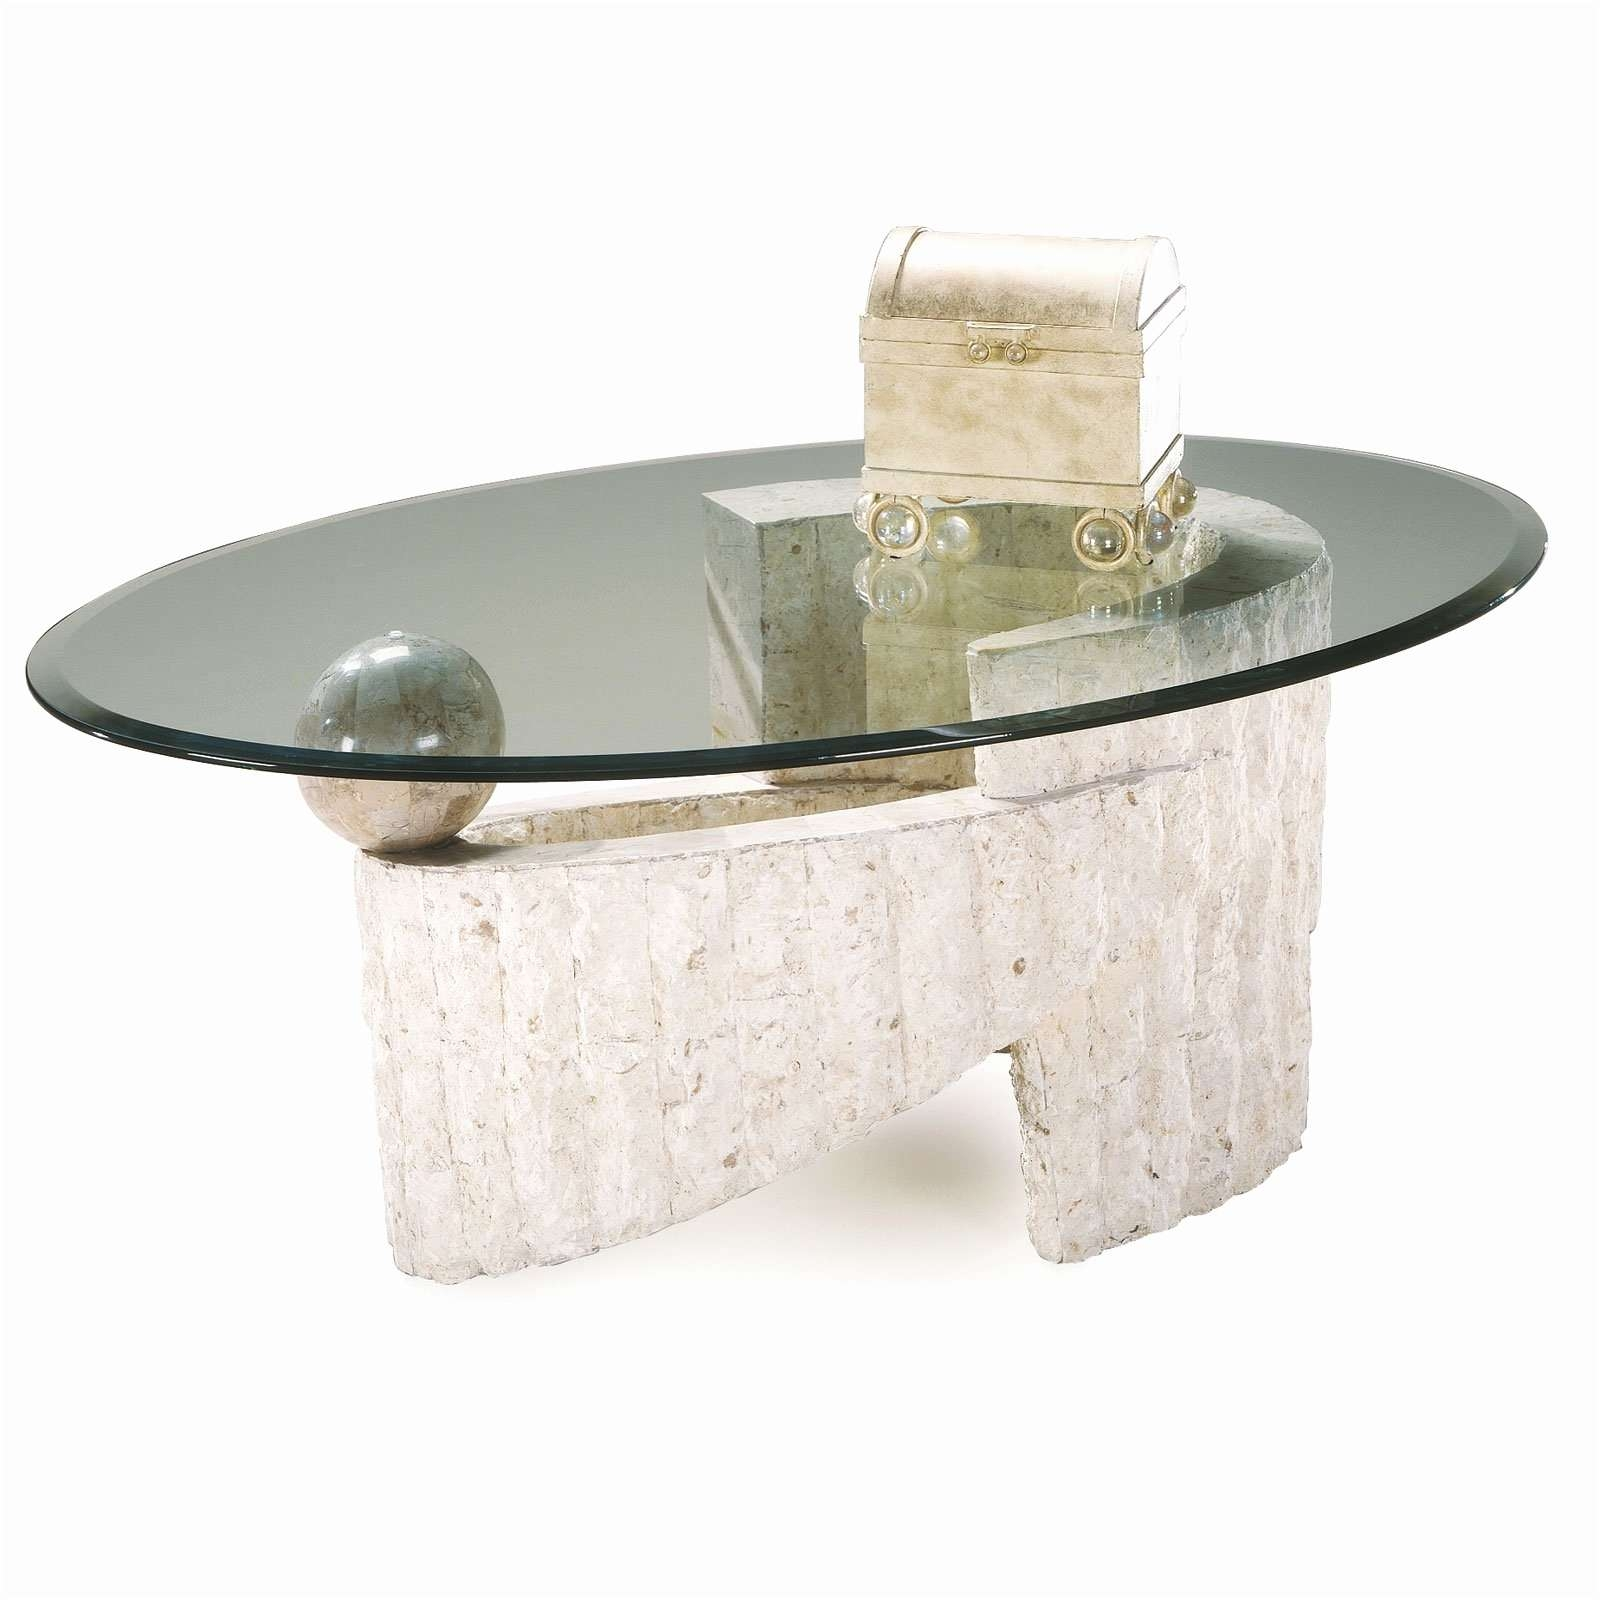 Newest Glass And Stone Coffee Table In Coffee Tables : Stone Coffee Table Gardens White With Glass Top (View 16 of 20)